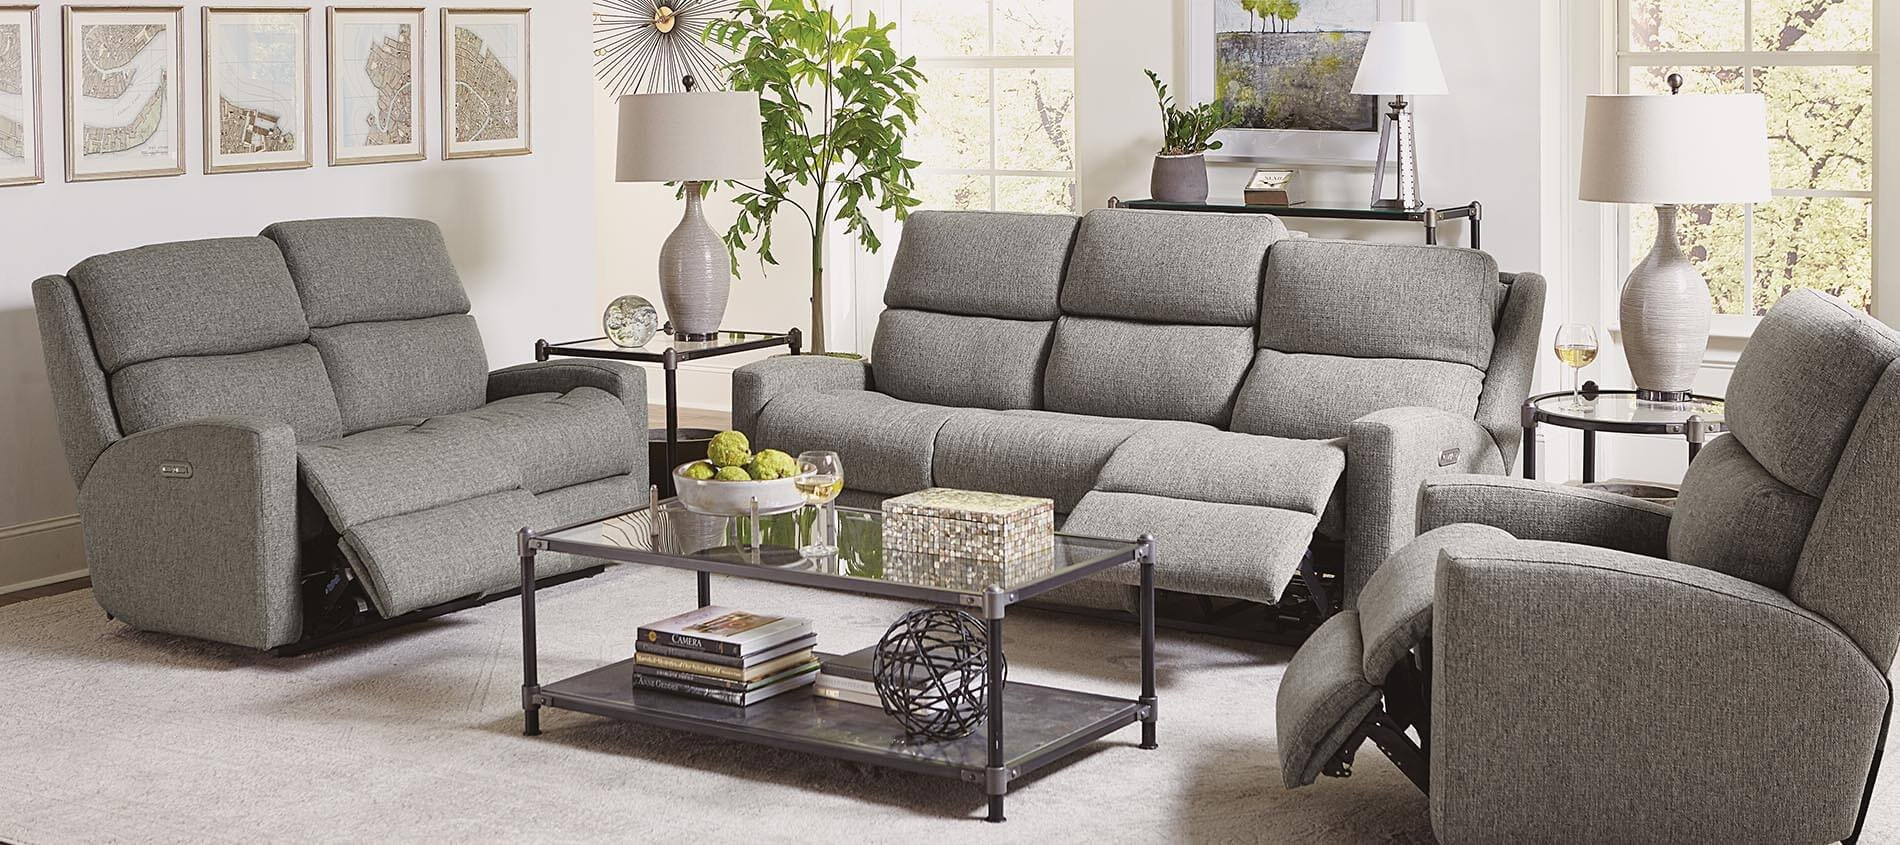 Catalina Living Area Furniture Collection